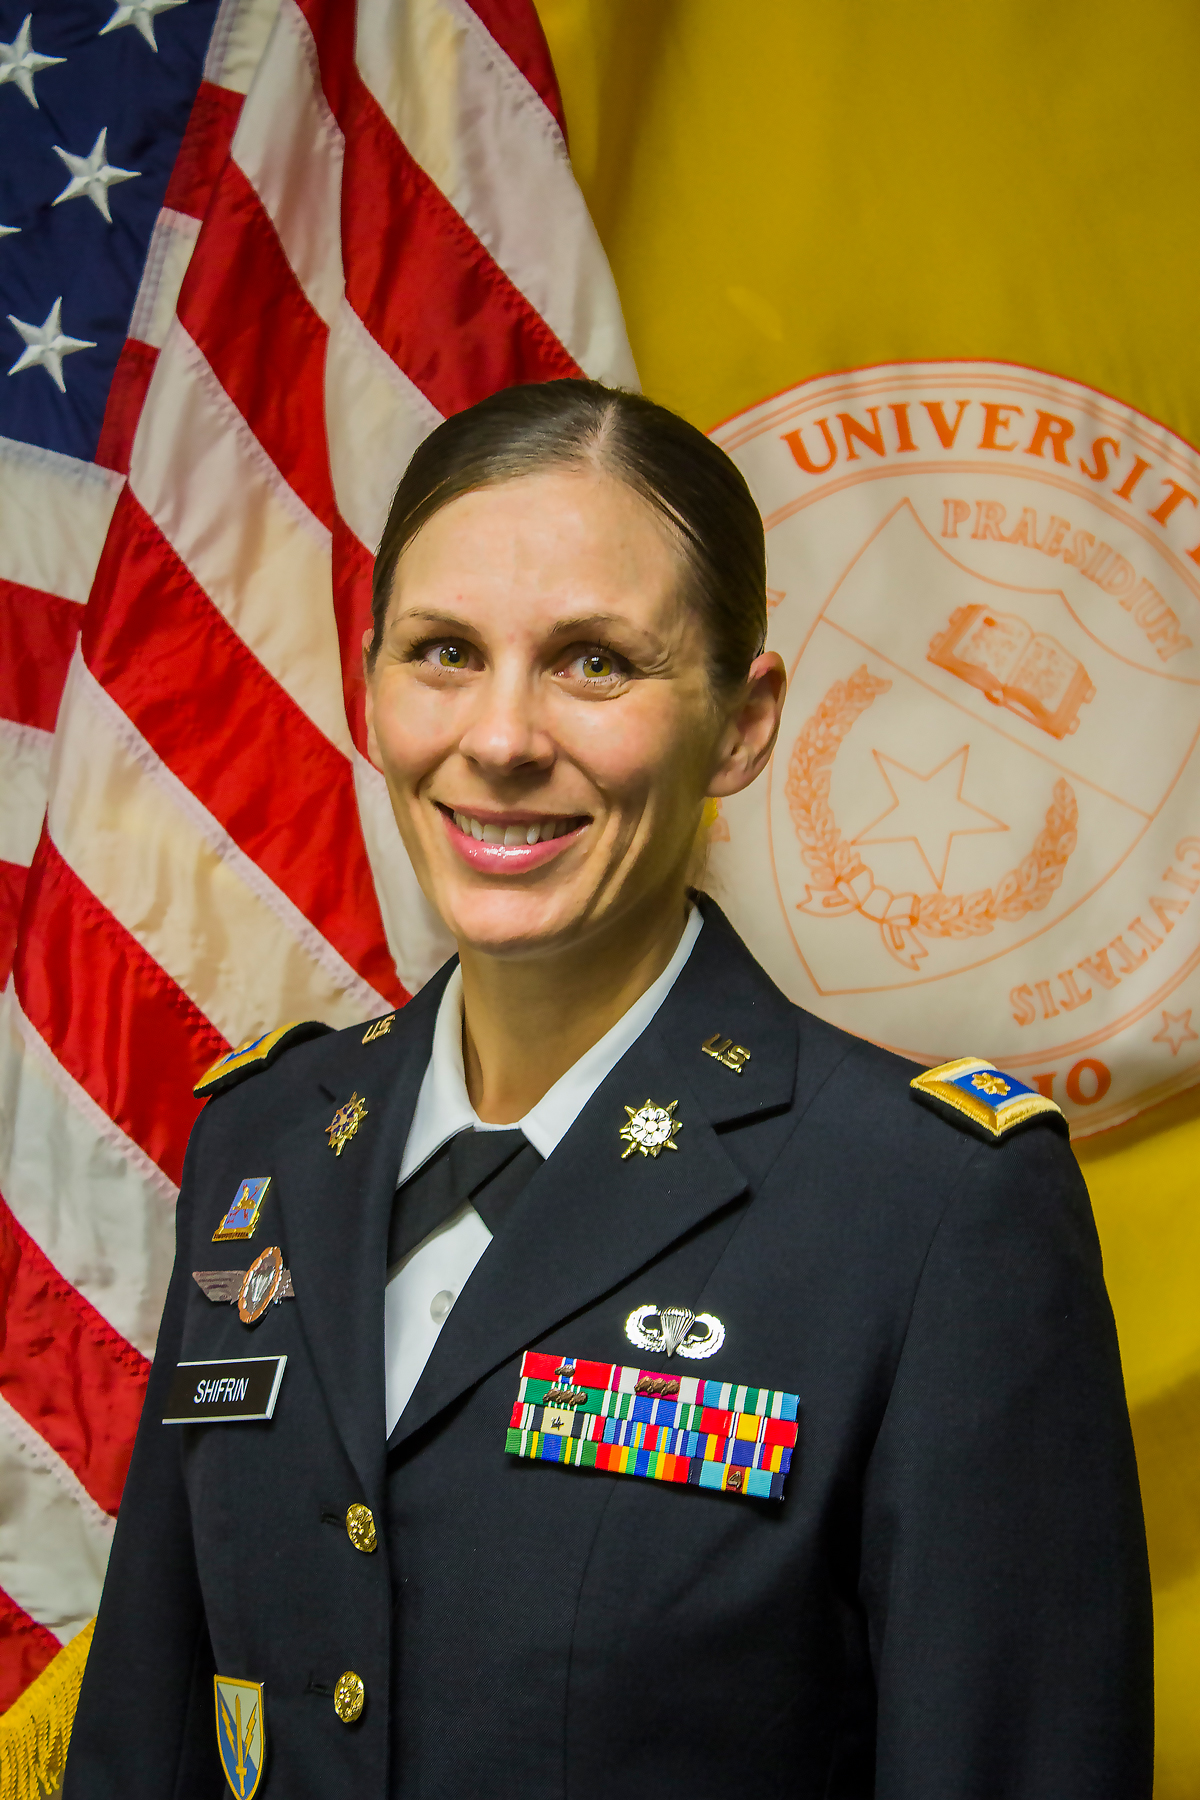 LTC Shifrin, Department Chair and Professor of Military Science